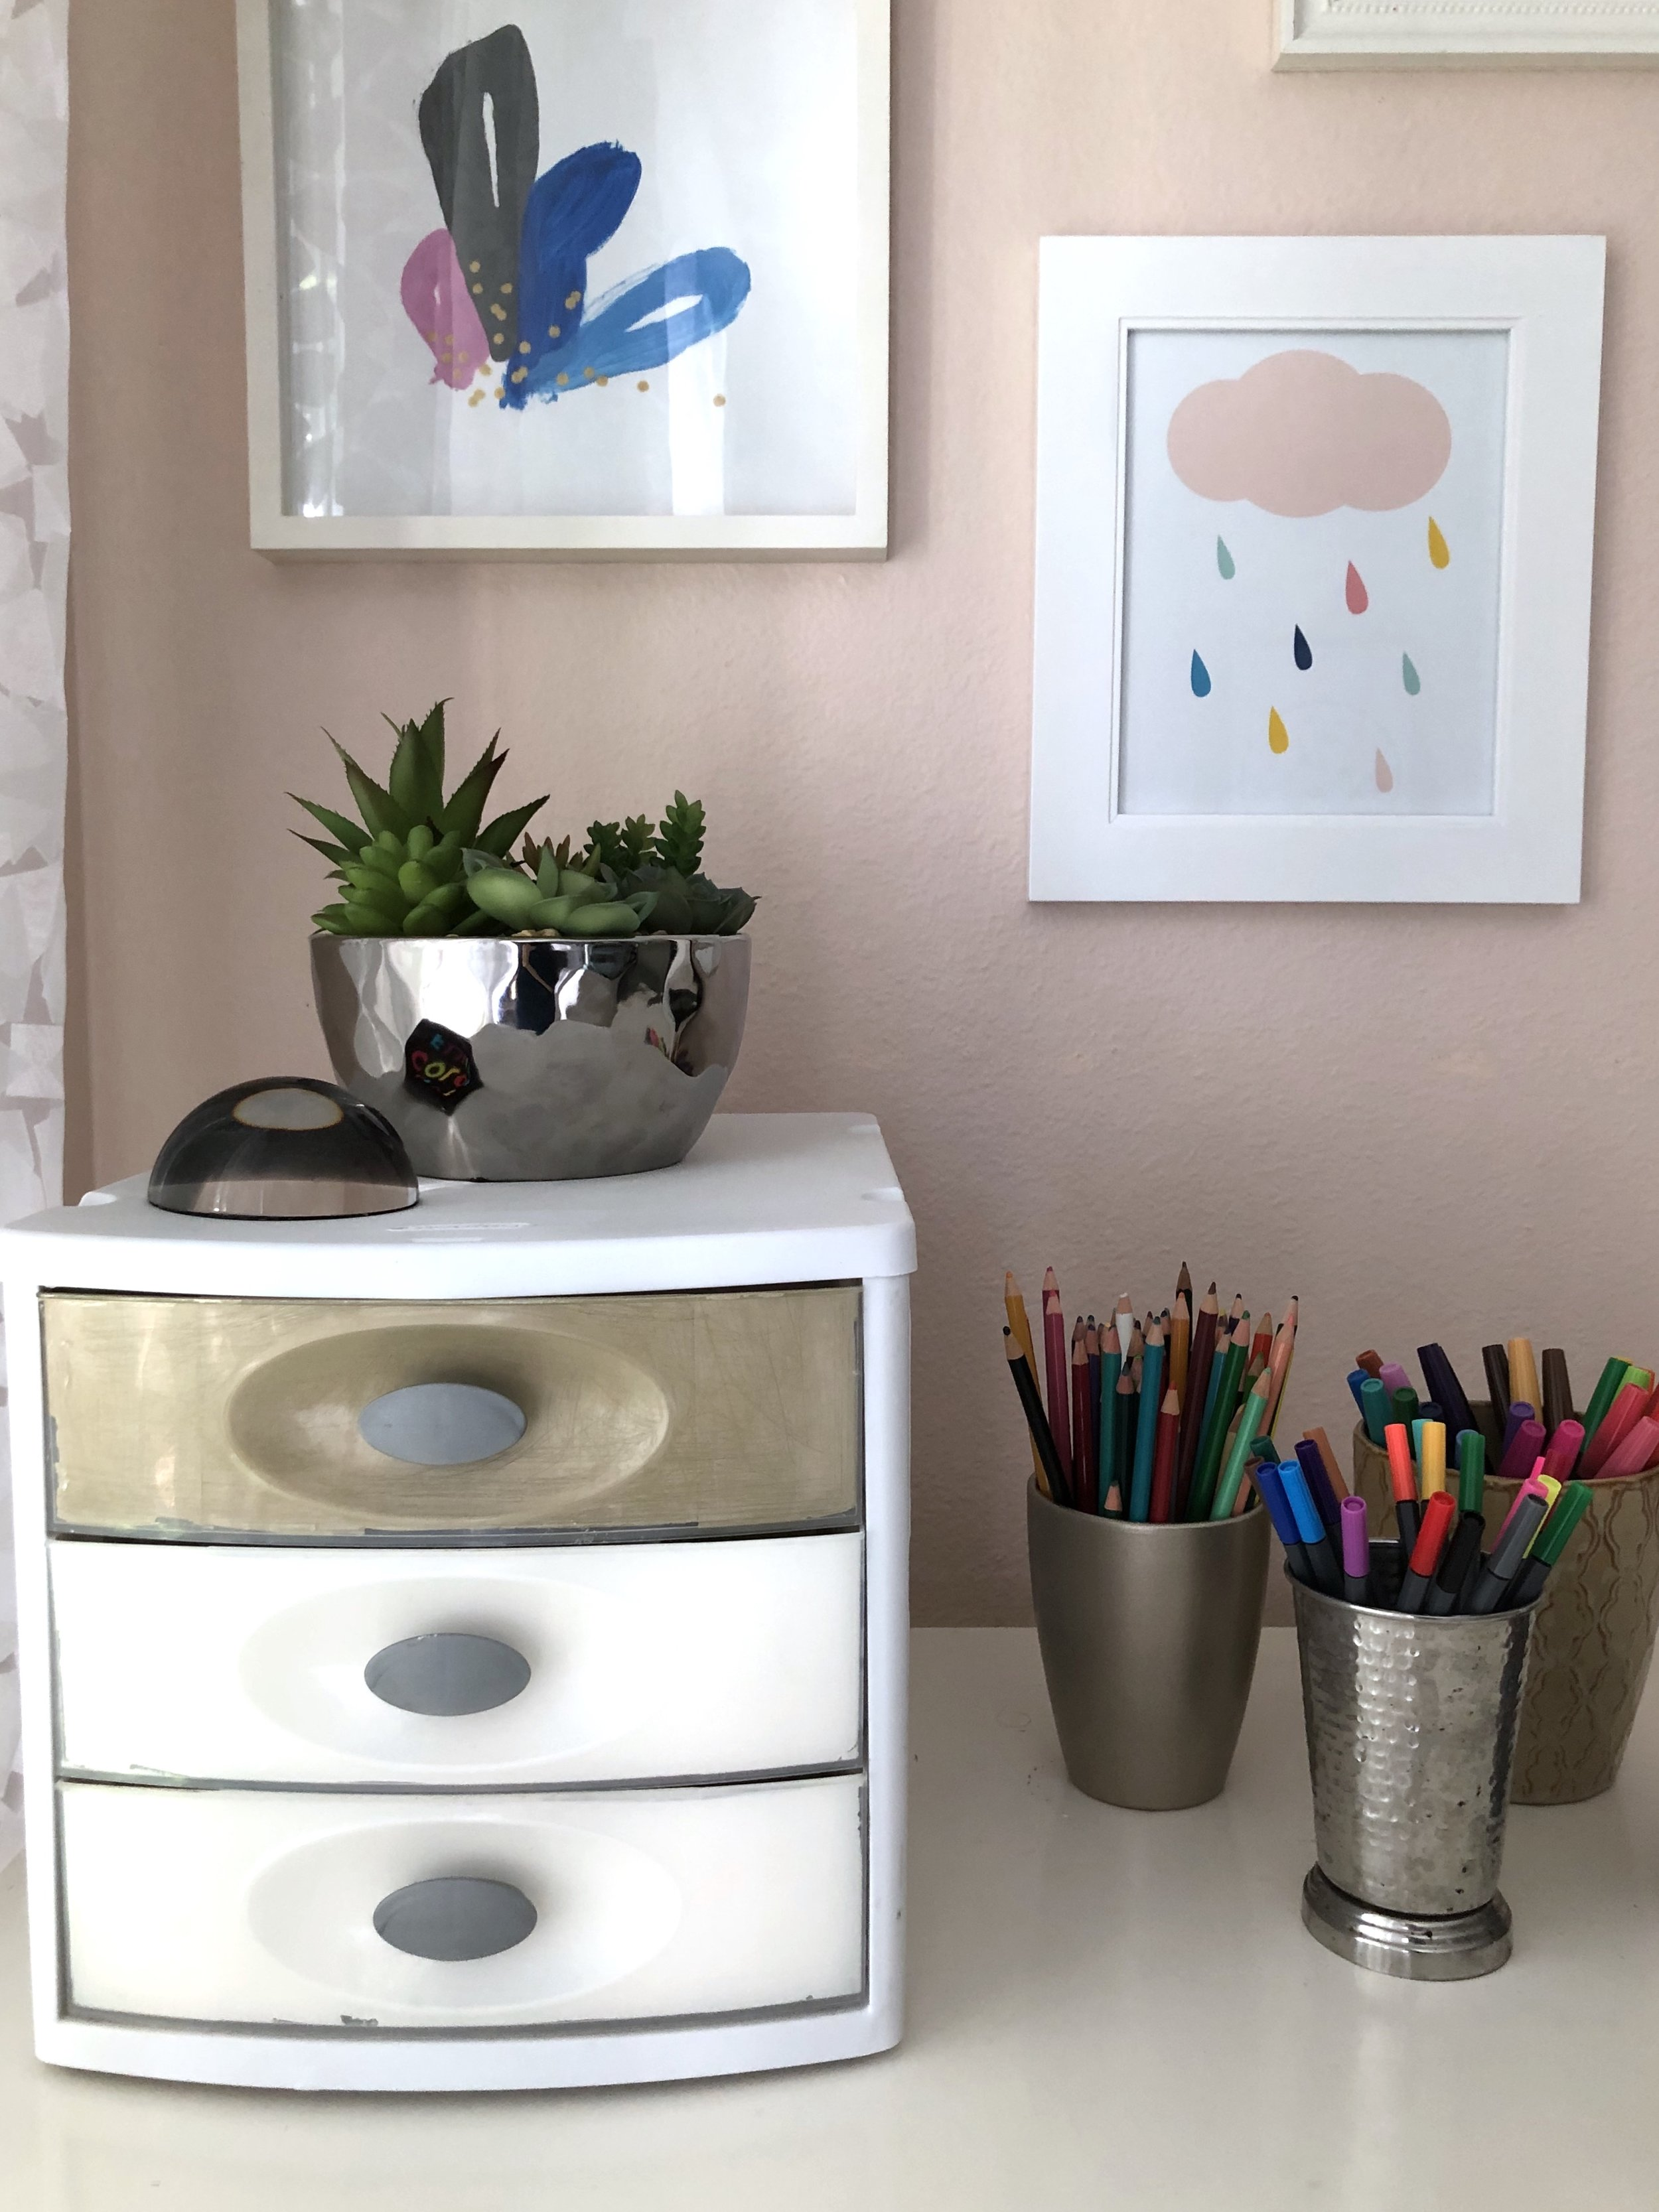 I also only wanted to accessorize with functional items, like my beautiful rainbows of art supplies in decorative vases. My hubby also helped me diy to declutter and chic-up the desk organizer with some leftover gold and white spray paint.